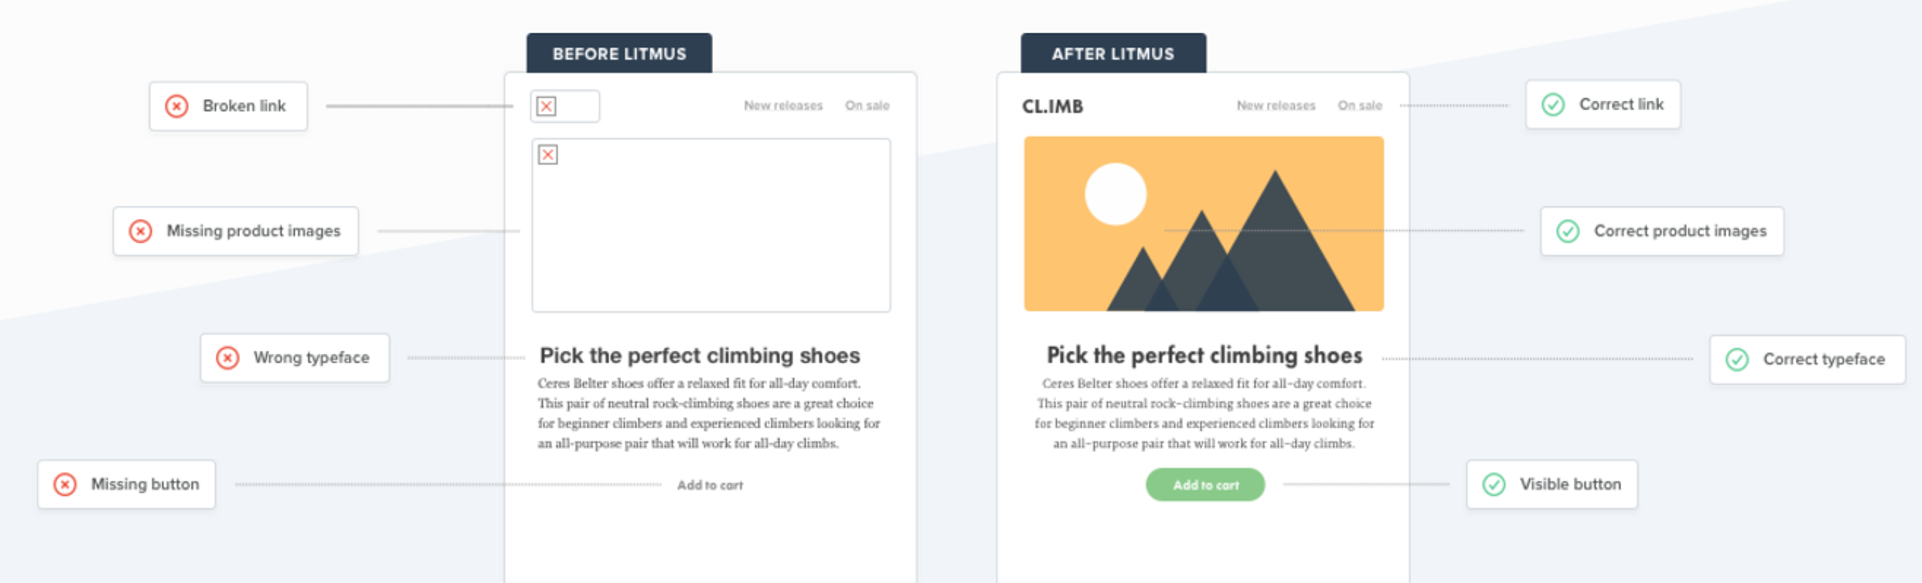 Email testing through Litmus